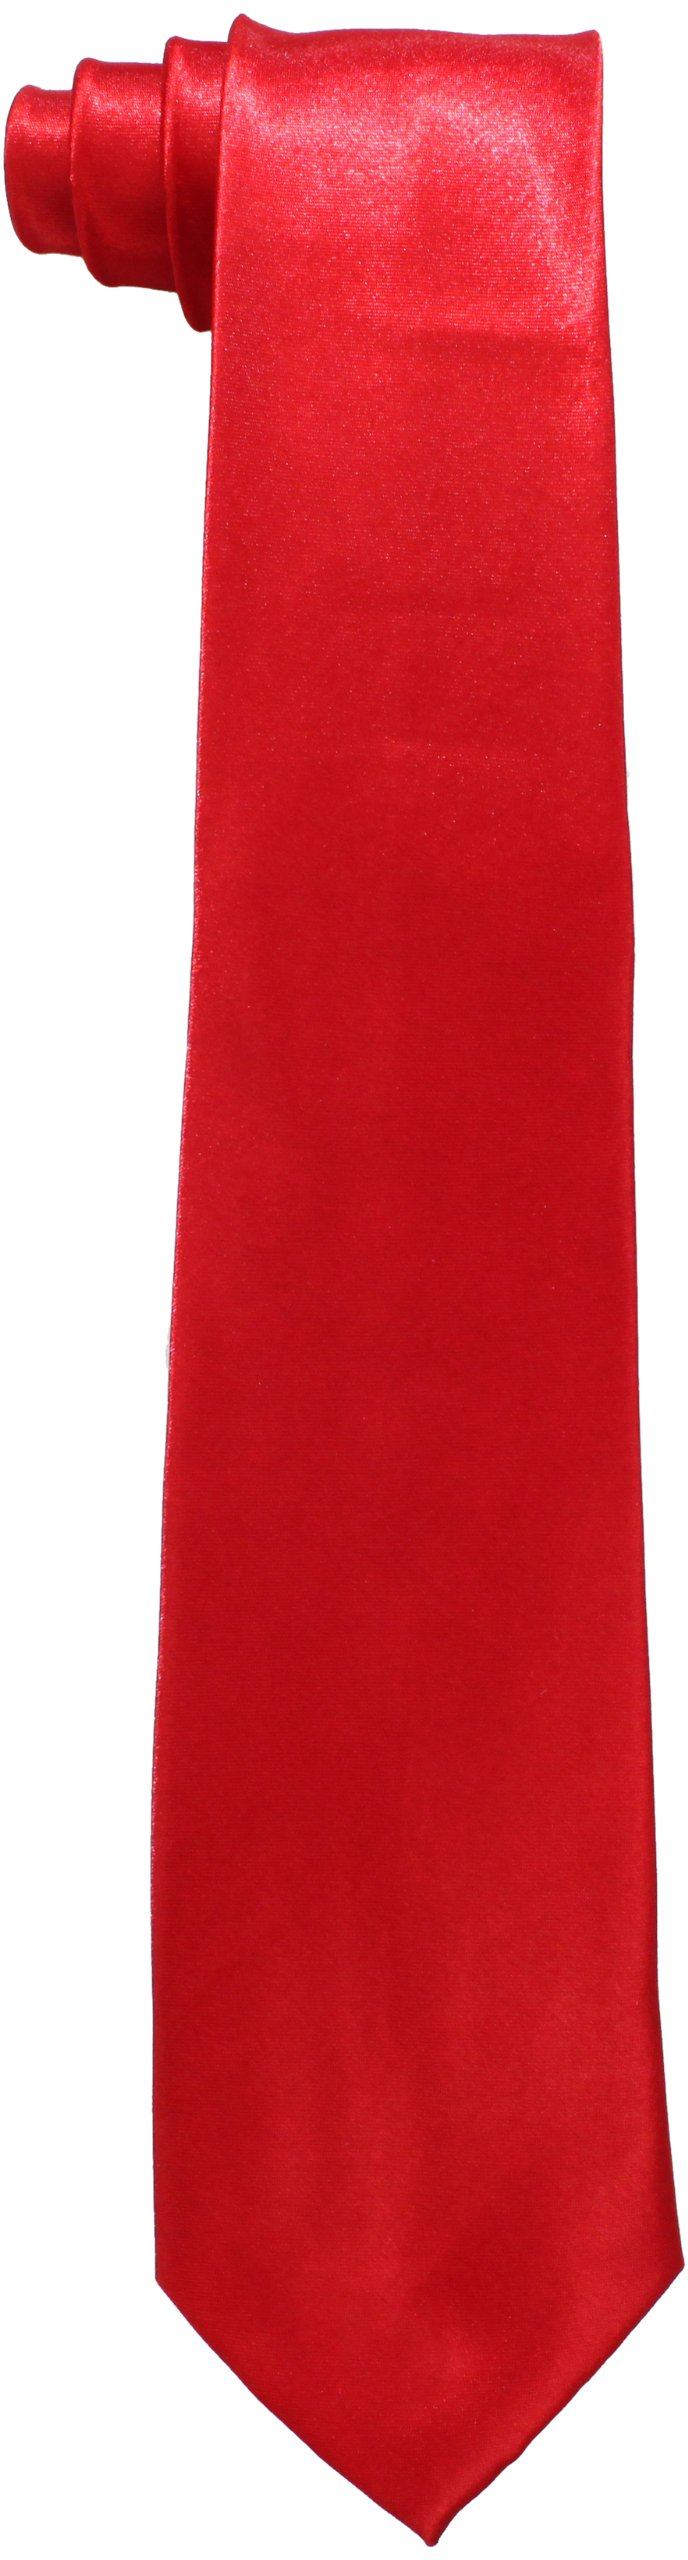 American Exchange Big Boys' Solid Tie, Red, 50 Inch